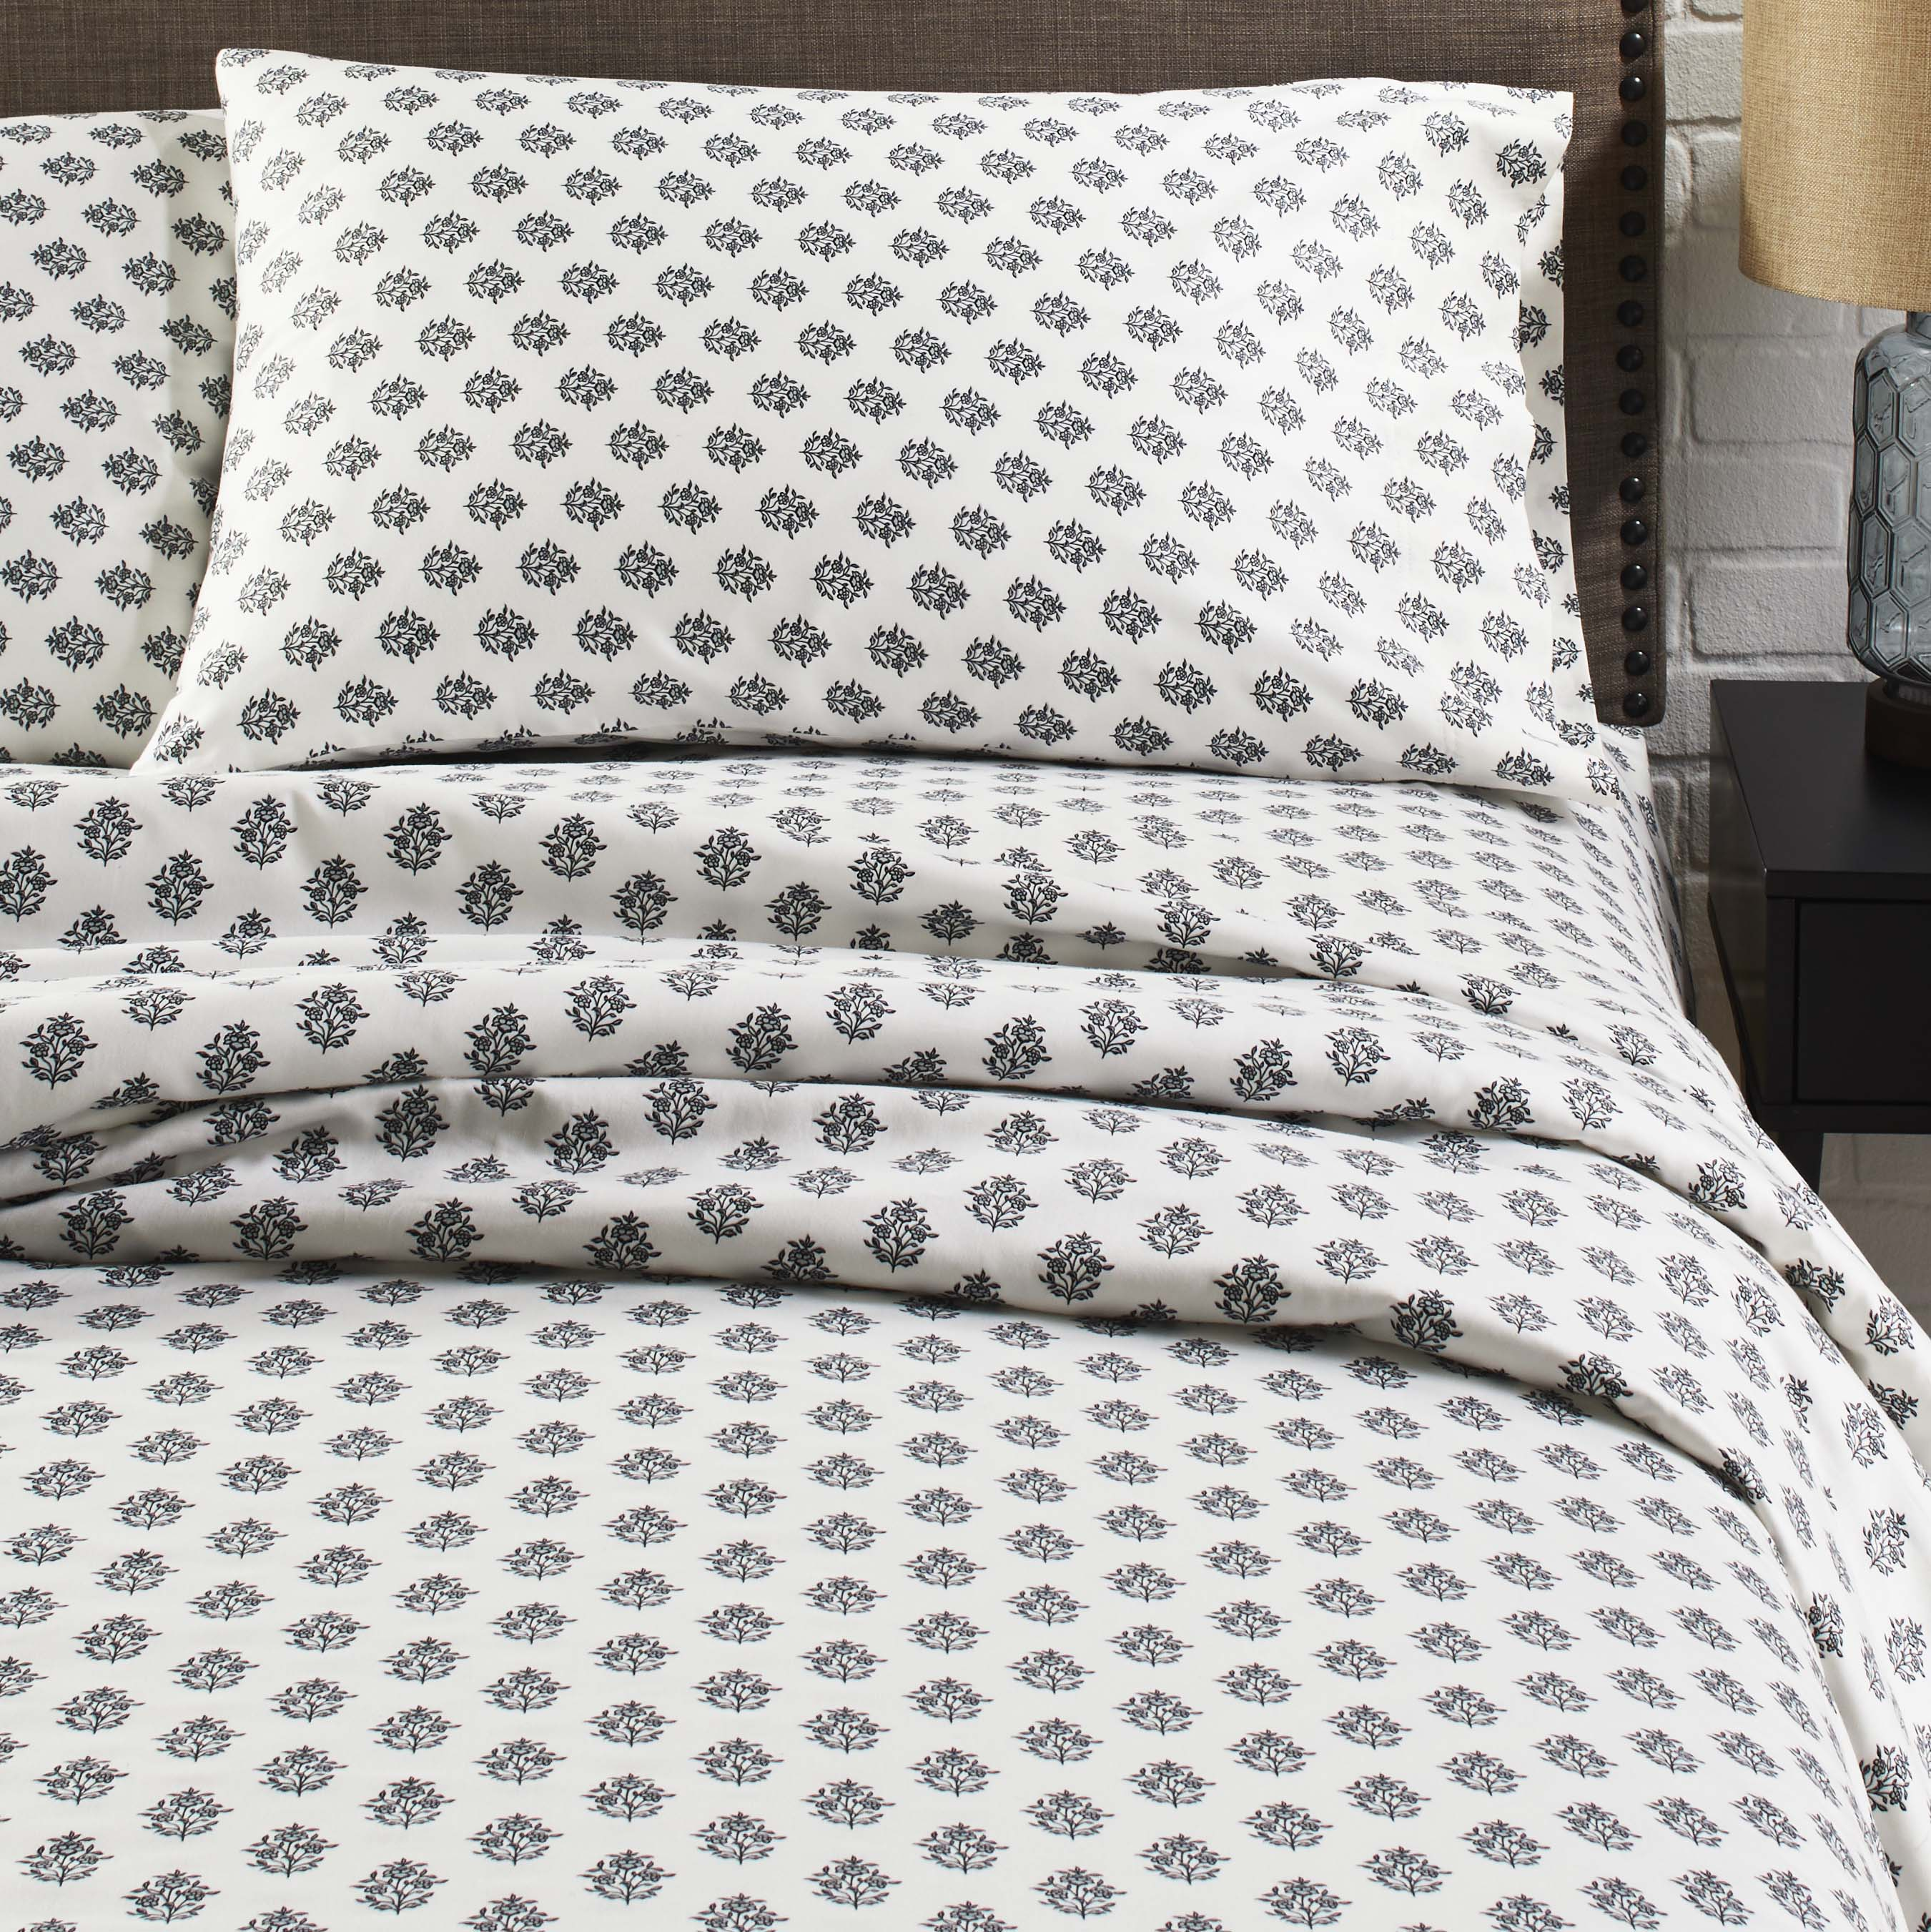 Superbe Better Homes And Gardens 300 Thread Count Sheet Collection